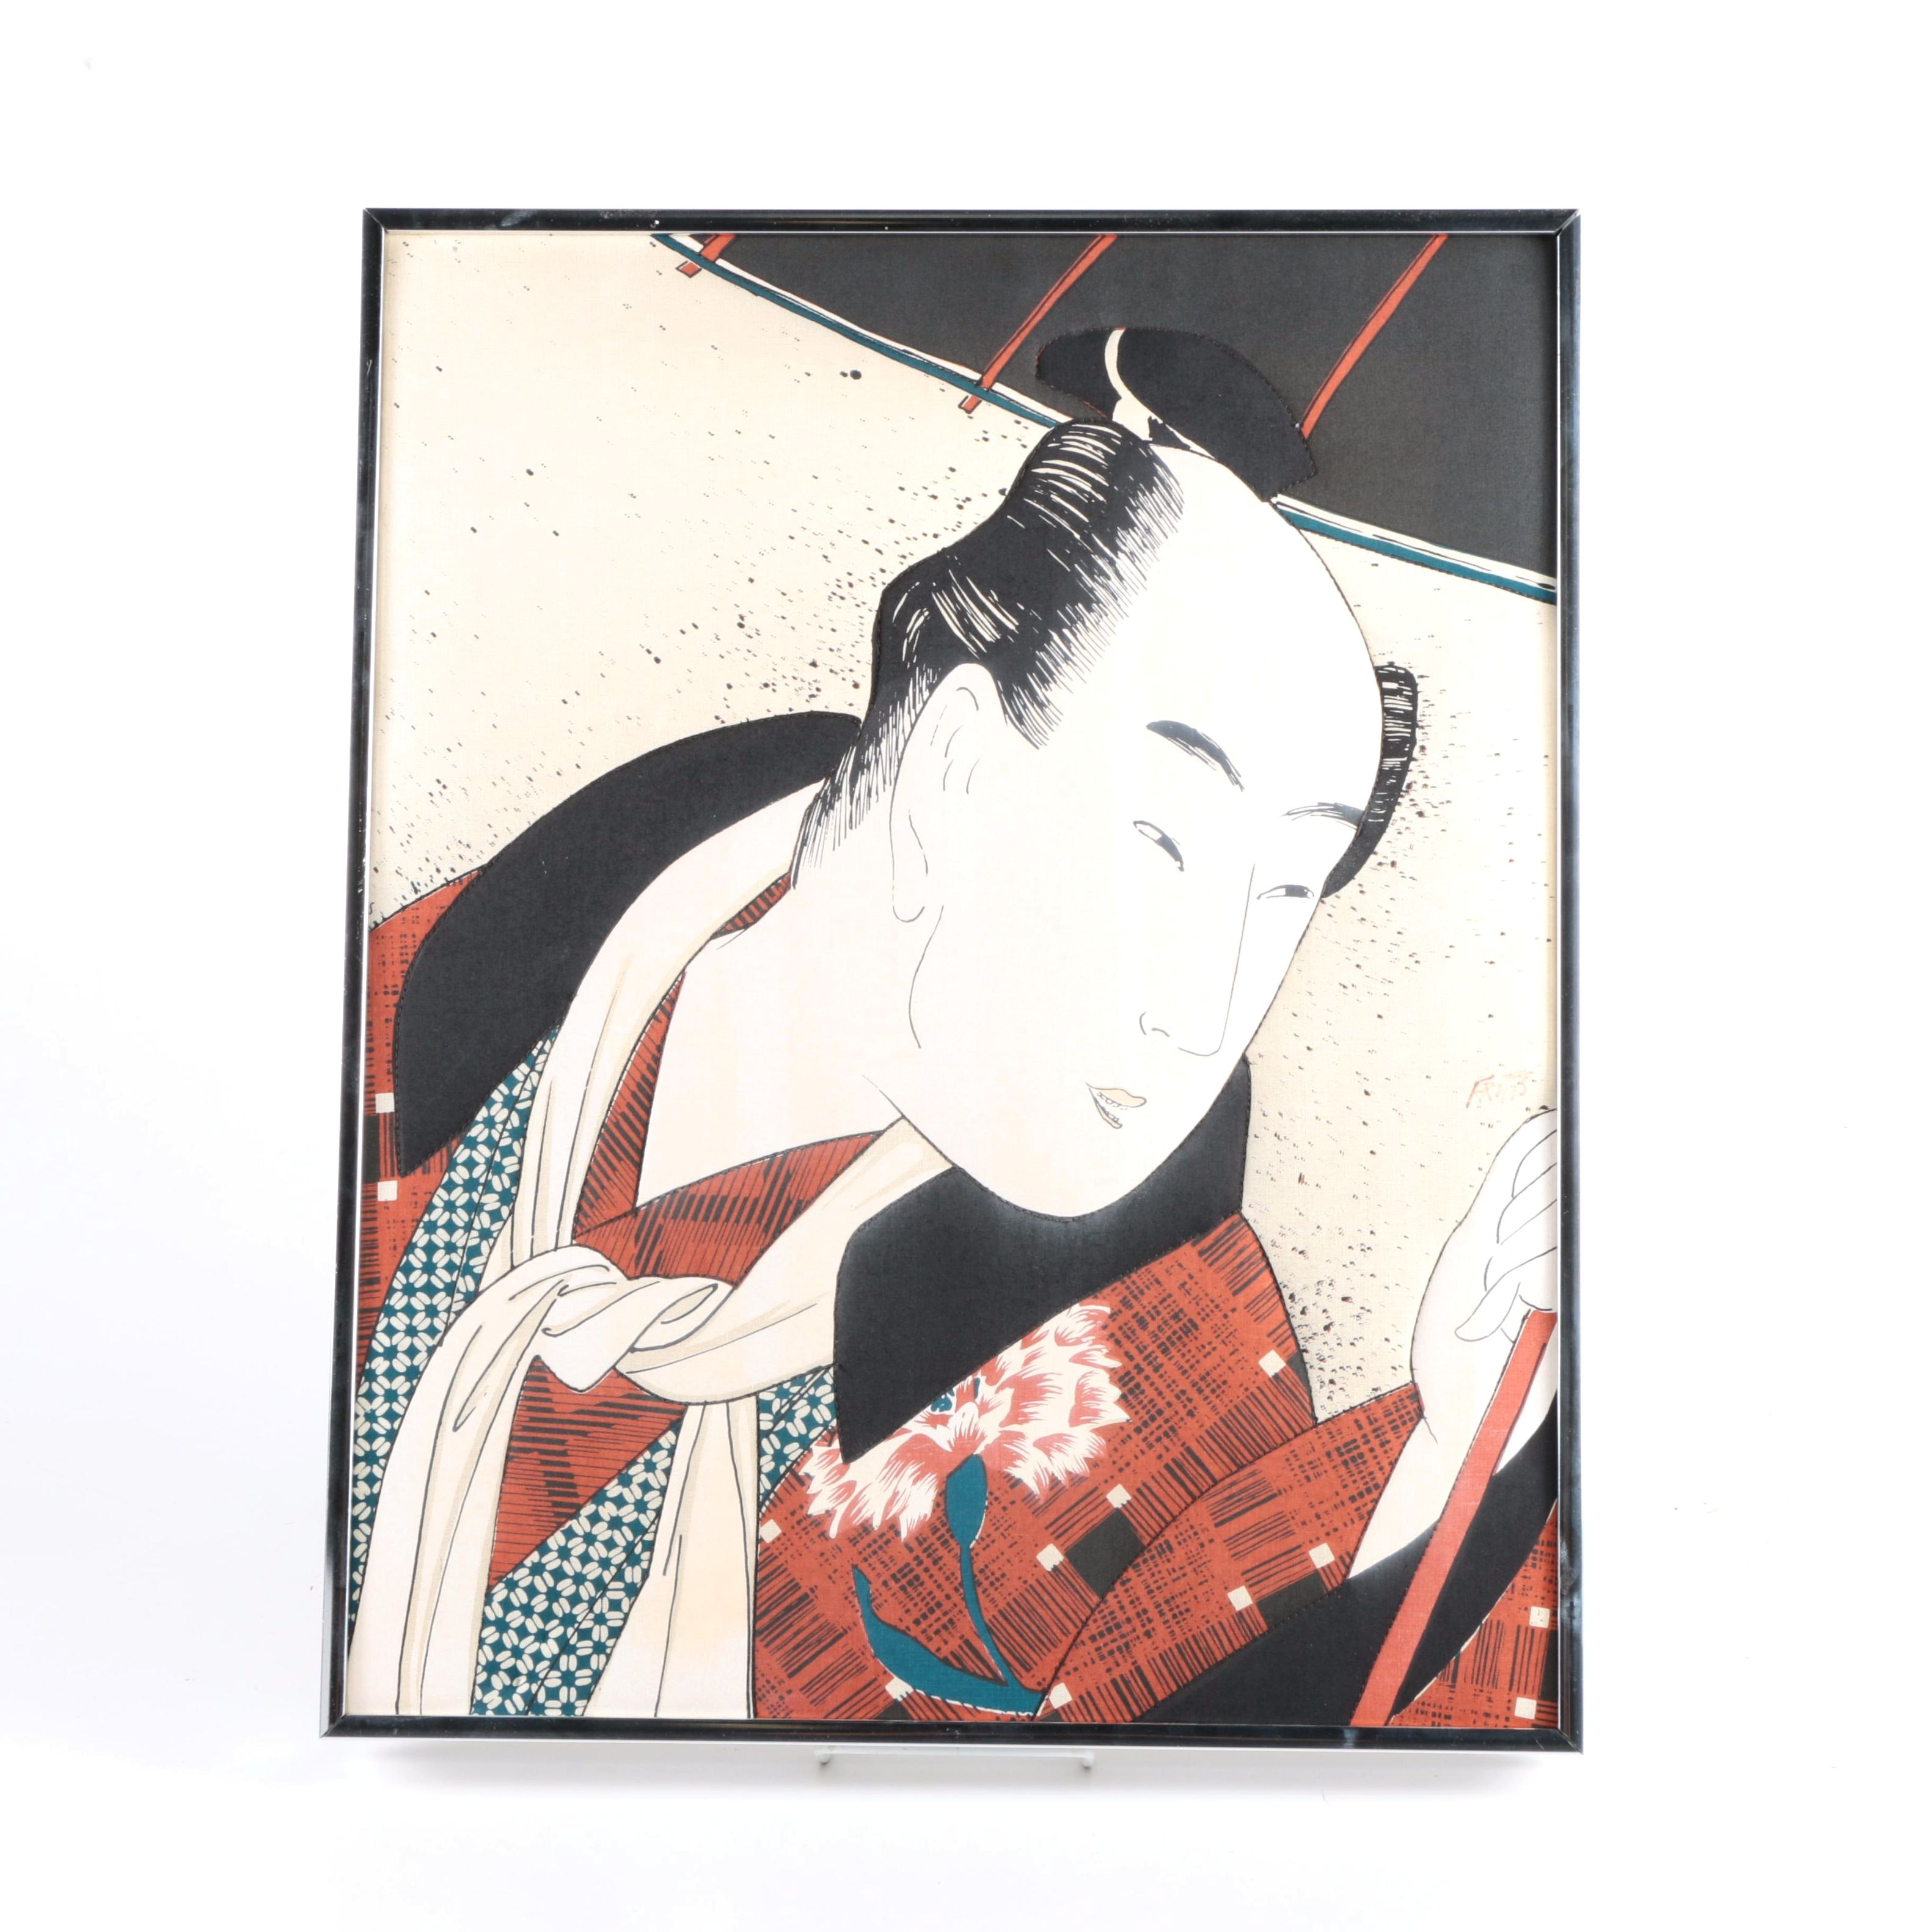 Fritts Japanese-Inspired Serigraph on Quilted Fabric